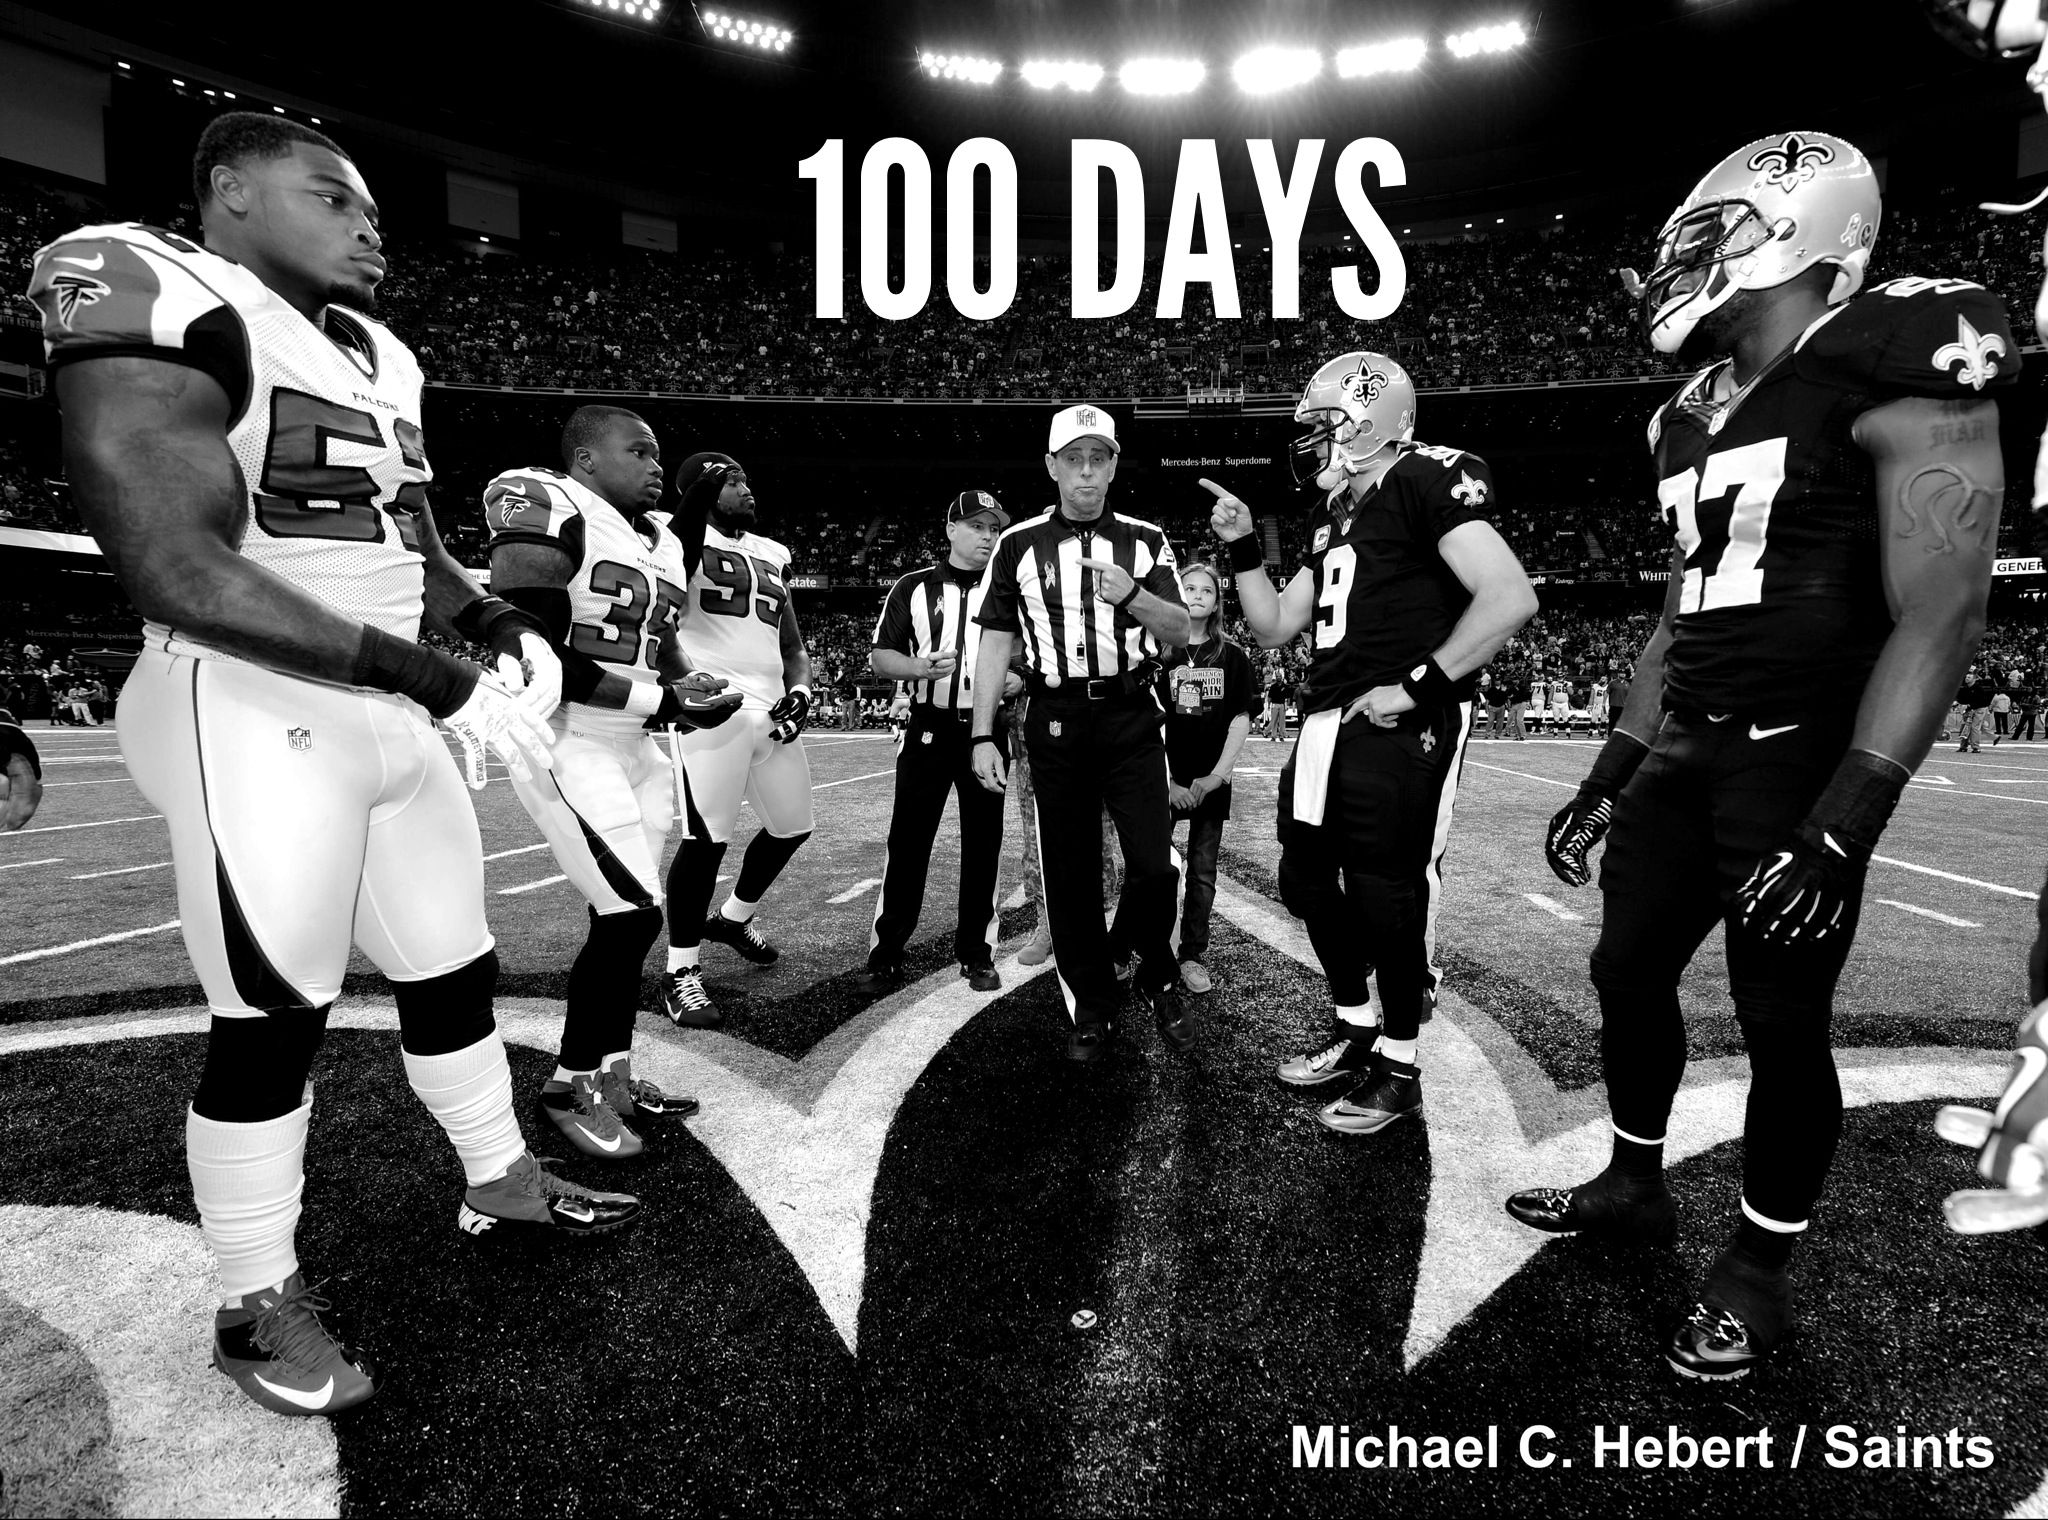 100 Days From Today The New Orleans Saints Host The Atlanta Falcons To Open The 2013 Regular Season New Orleans Saints New Orleans New Orleans Saints Football